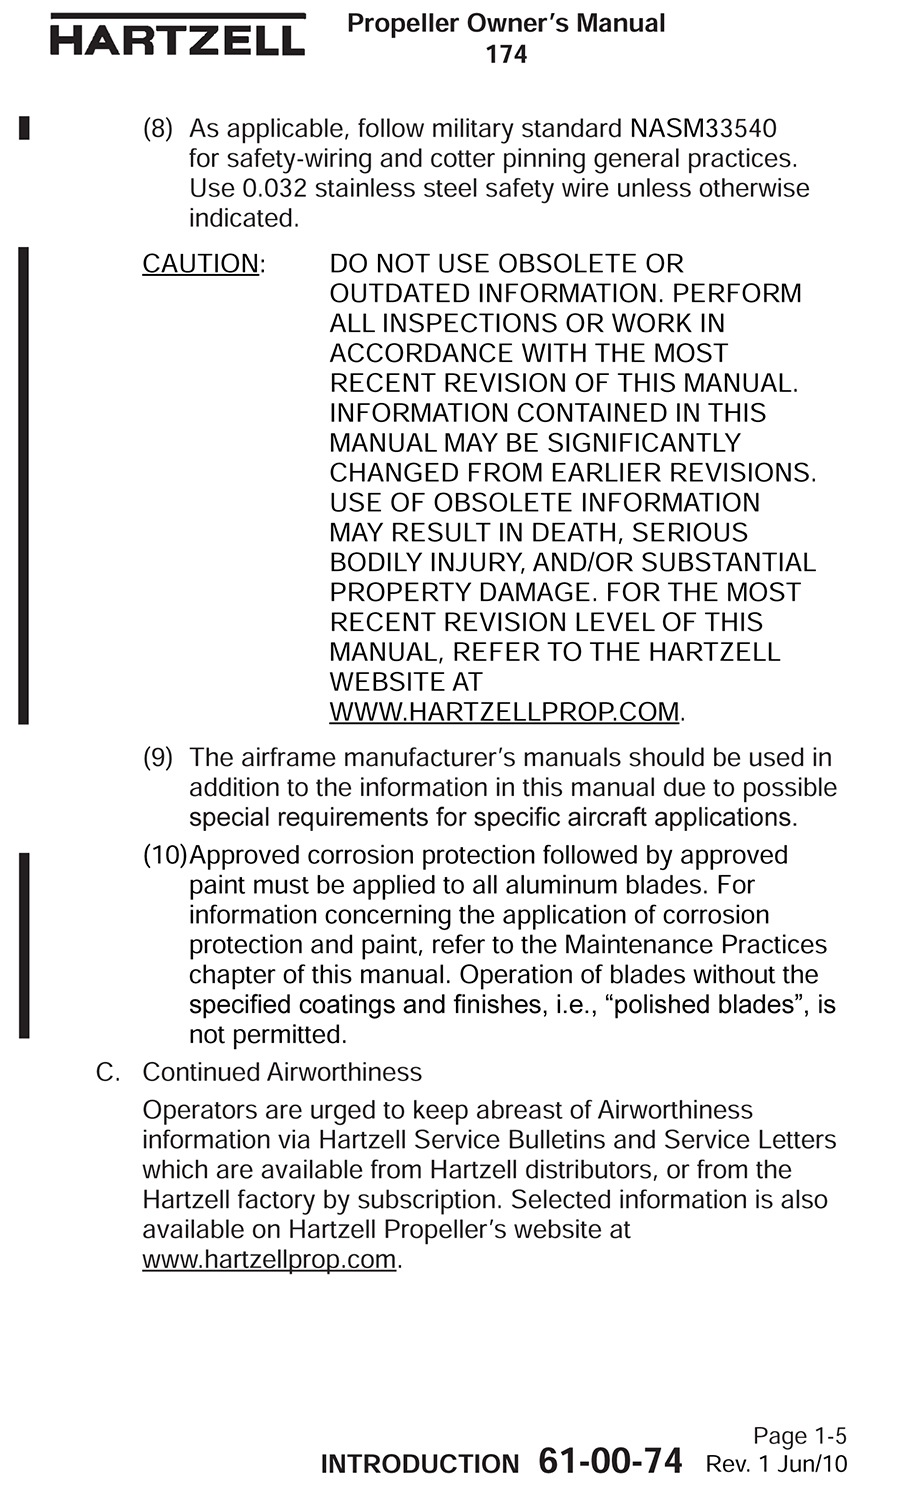 Hartzell Prop Manual 2010 page31